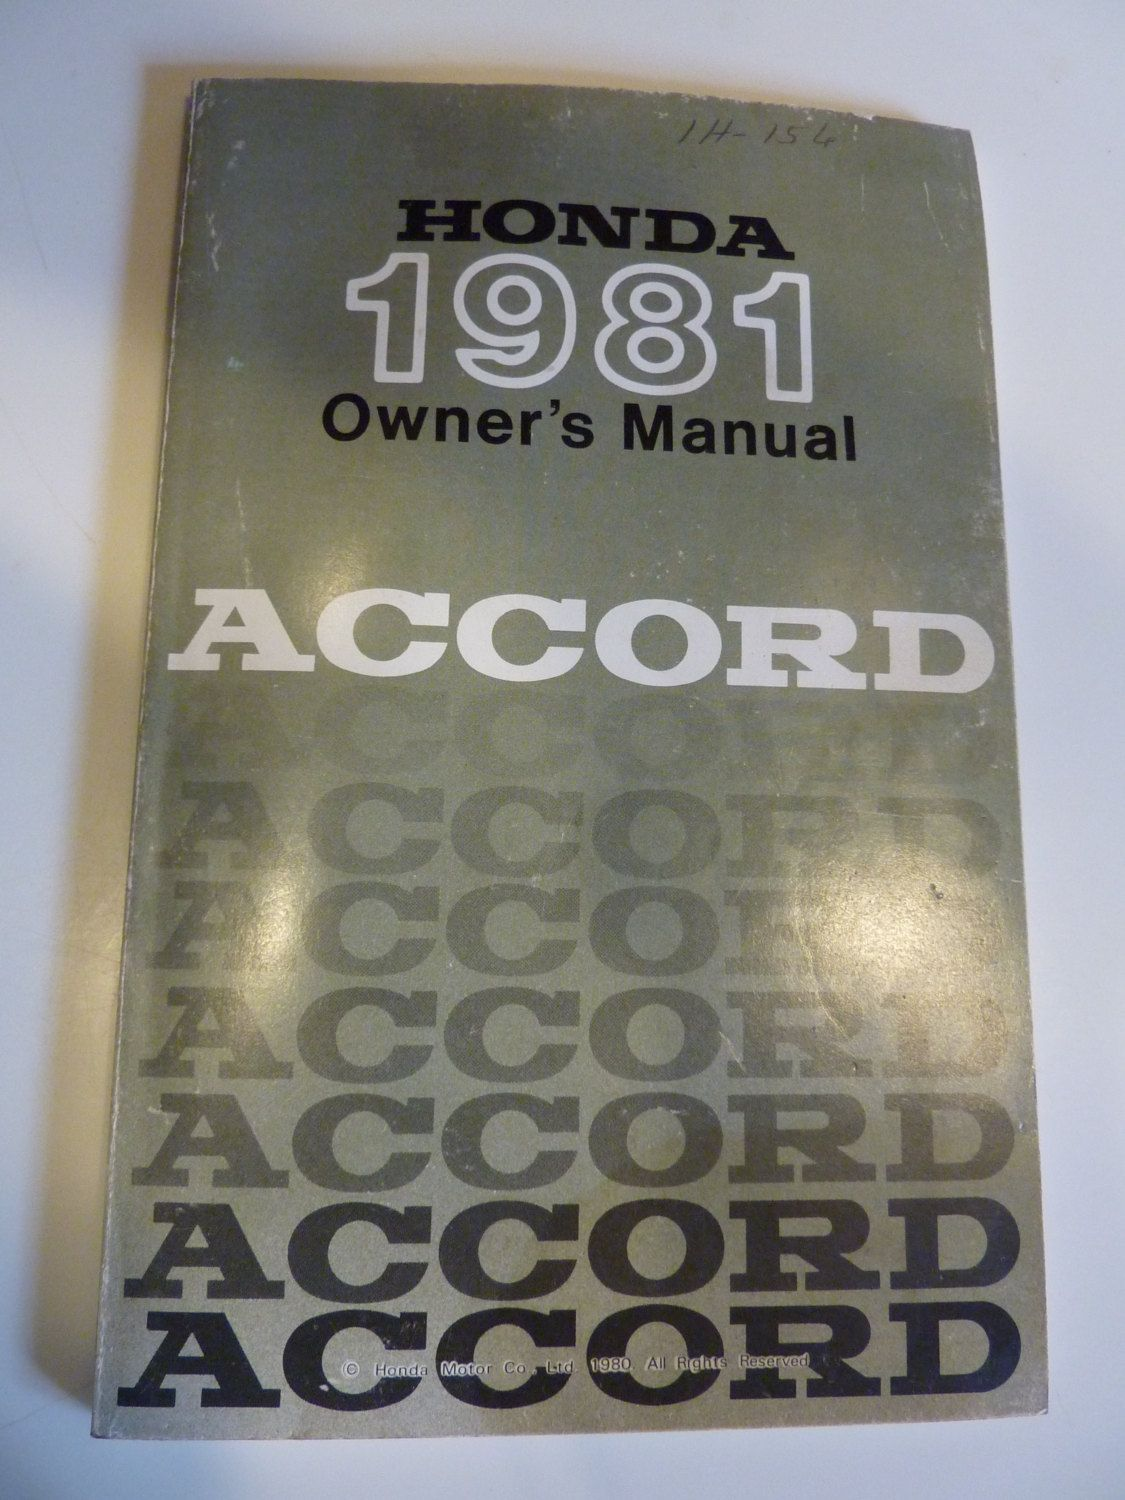 1981 Car Manual Honda Accord Auto Owners Book Maintenance Motor Company Ephemera Collectible